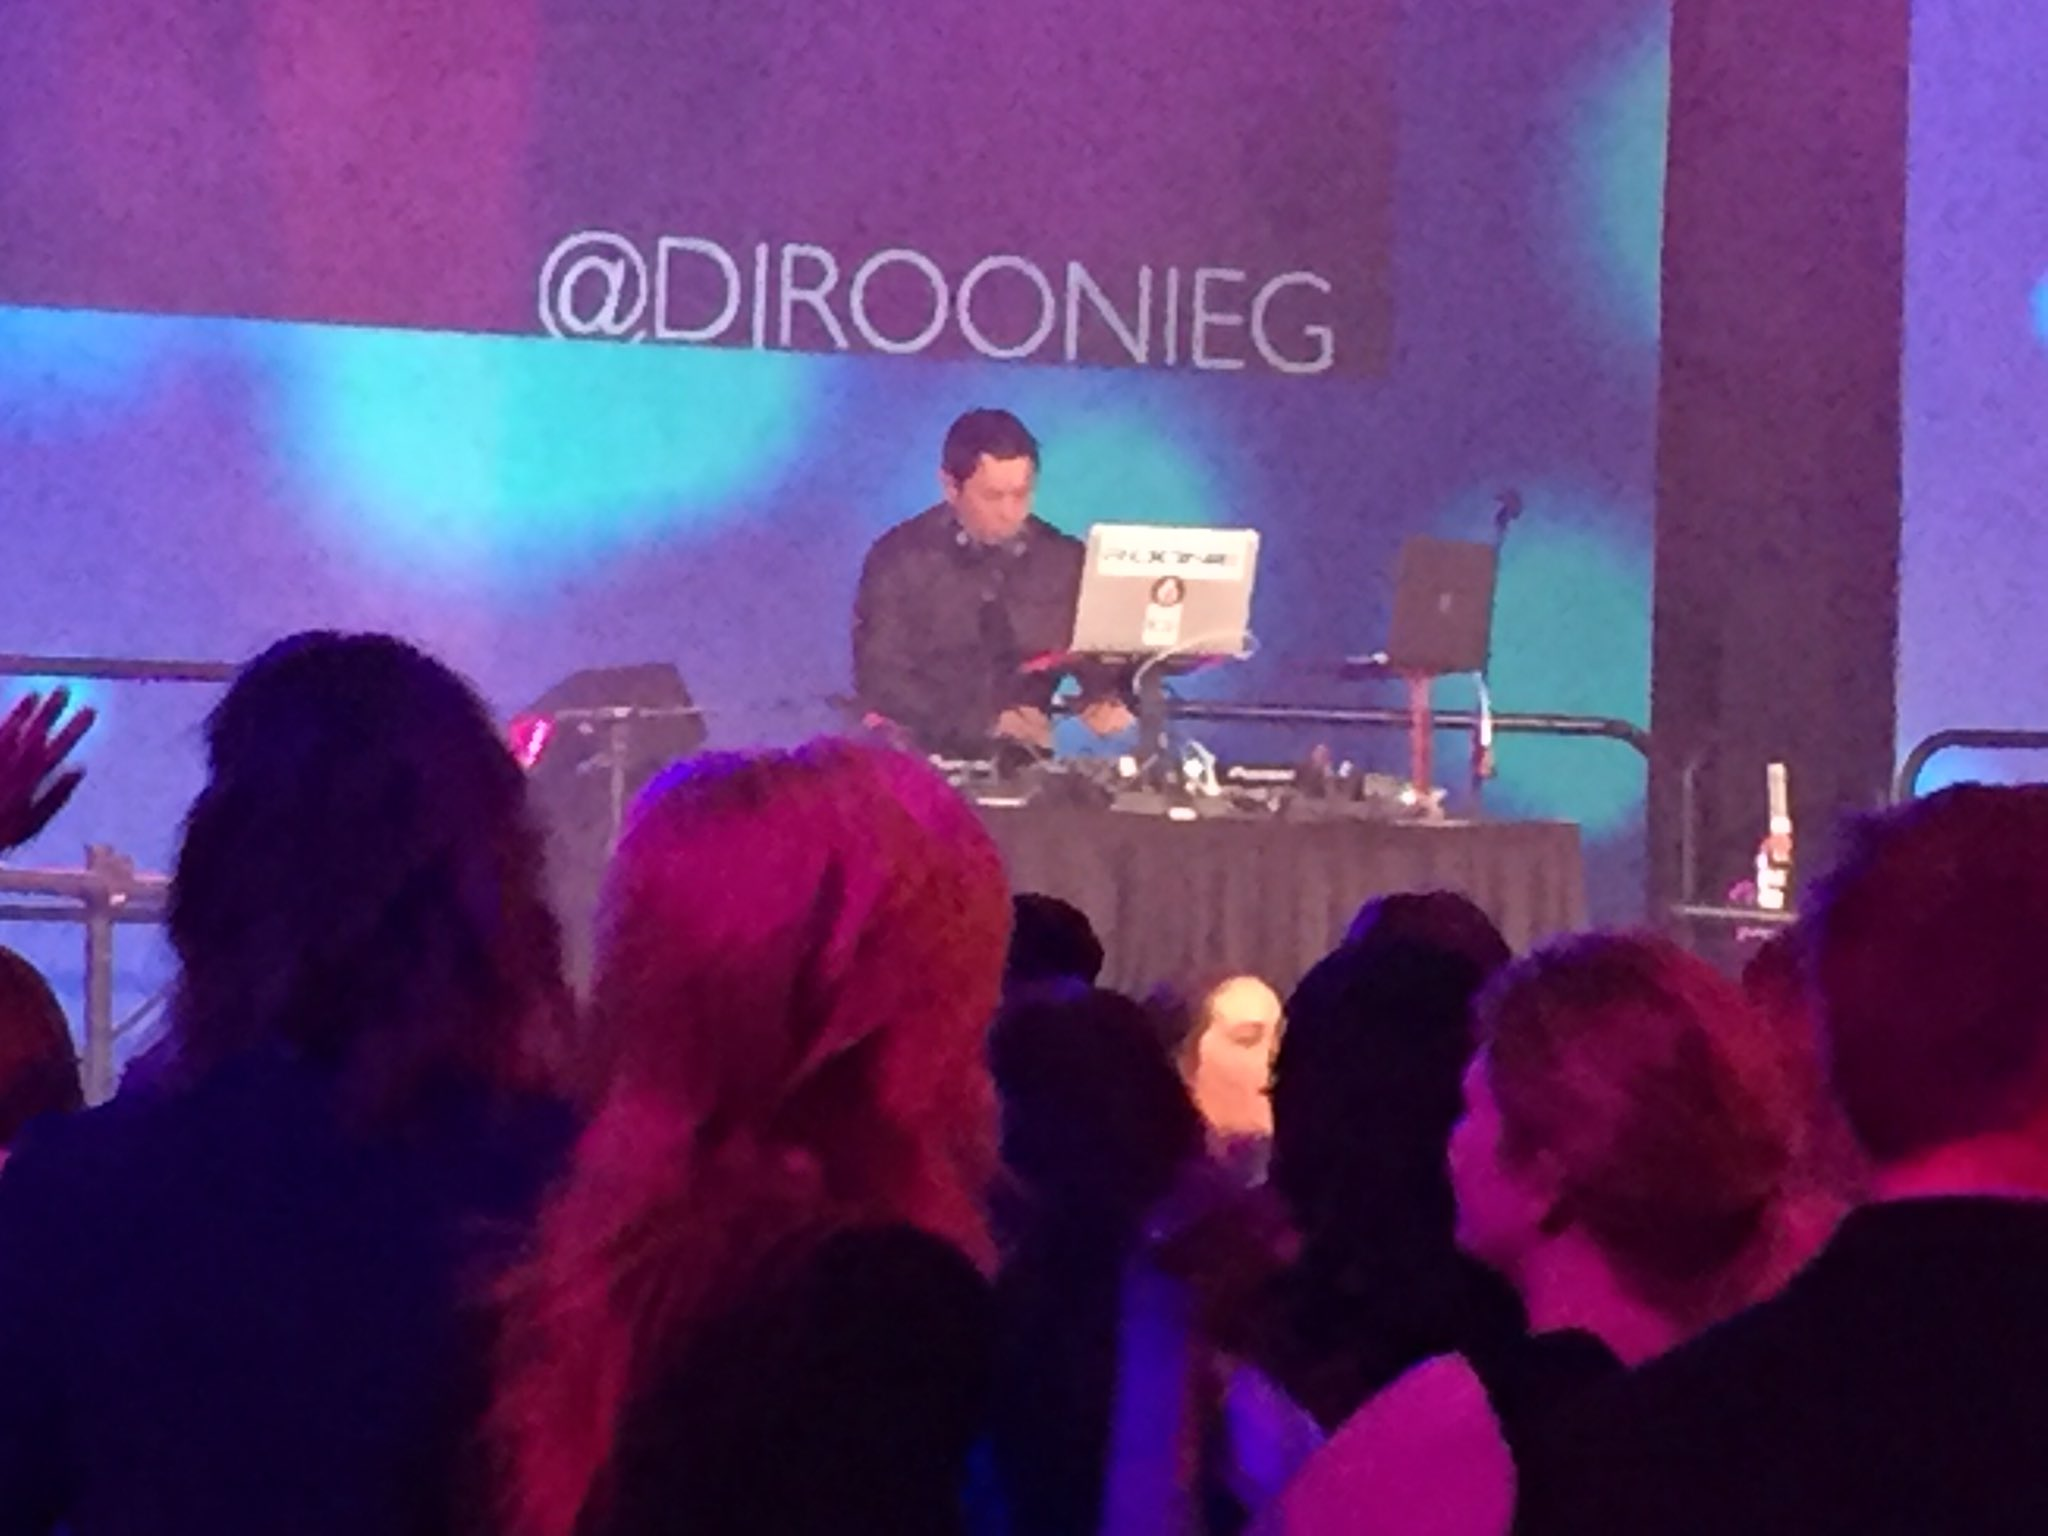 @DJRoonieG is in the house and all is well.  #ALAConf17 https://t.co/LfG6Yriehq